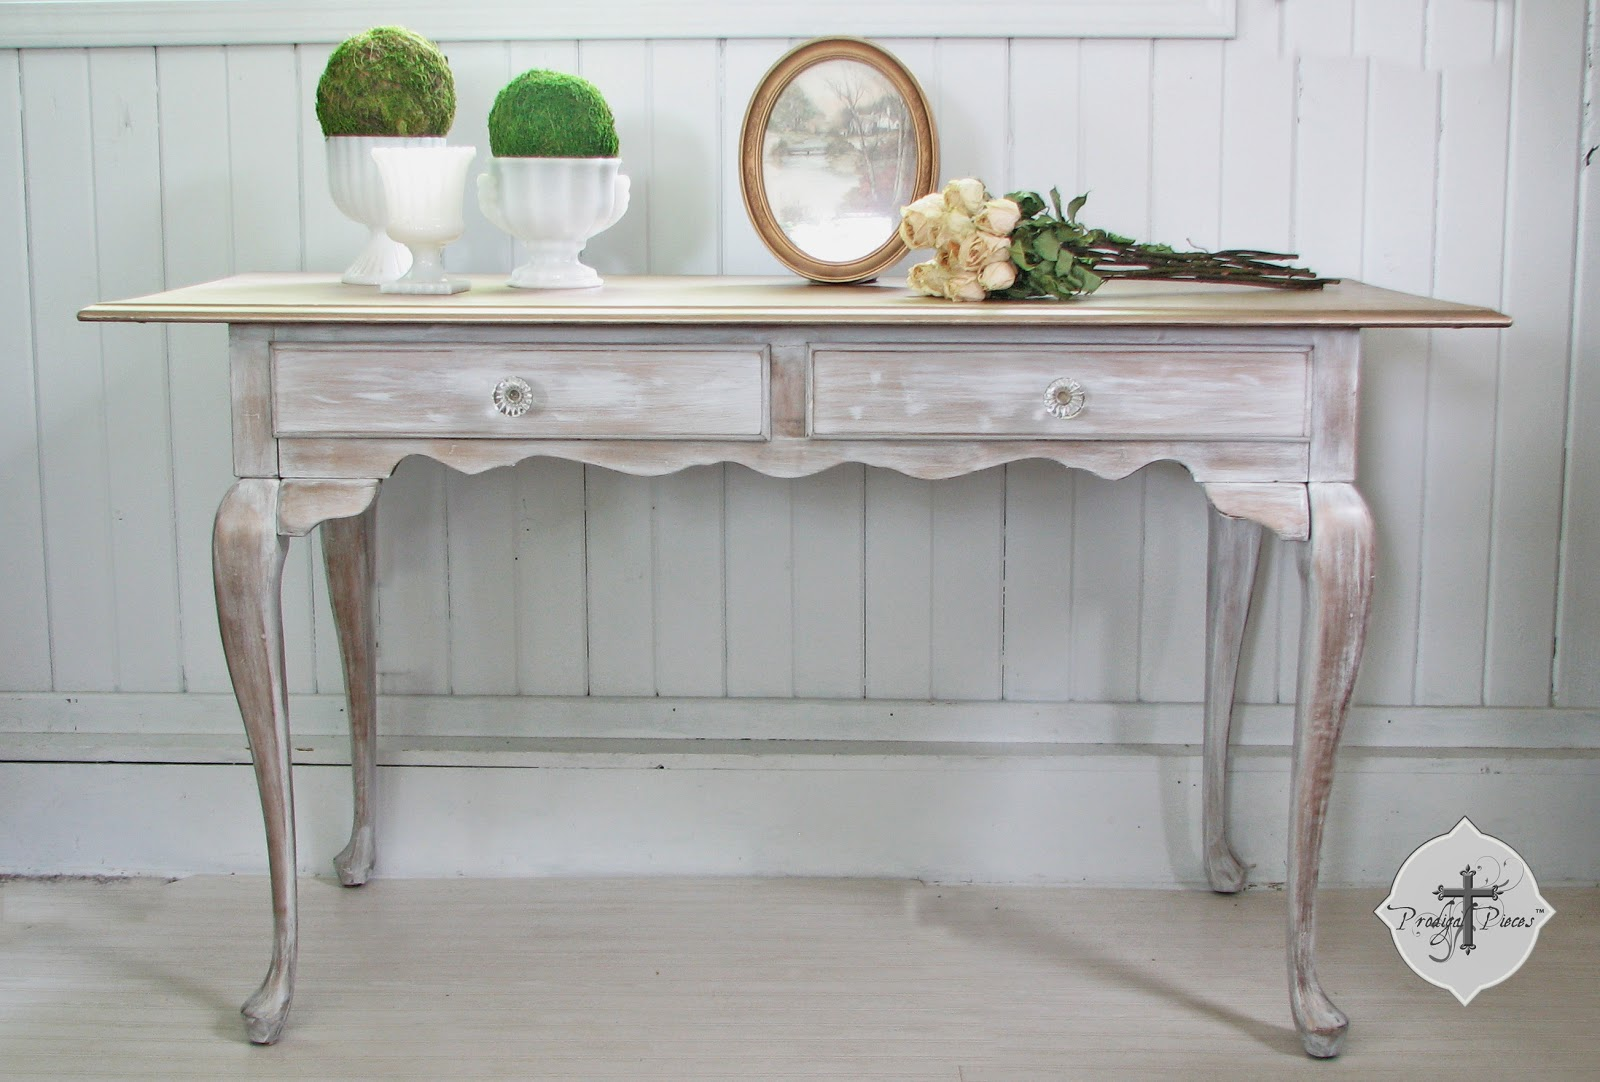 Vintage  Whitewashed Metallic Queen Anne Library Table by Larissa of Prodigal Pieces | prodigalpieces.com